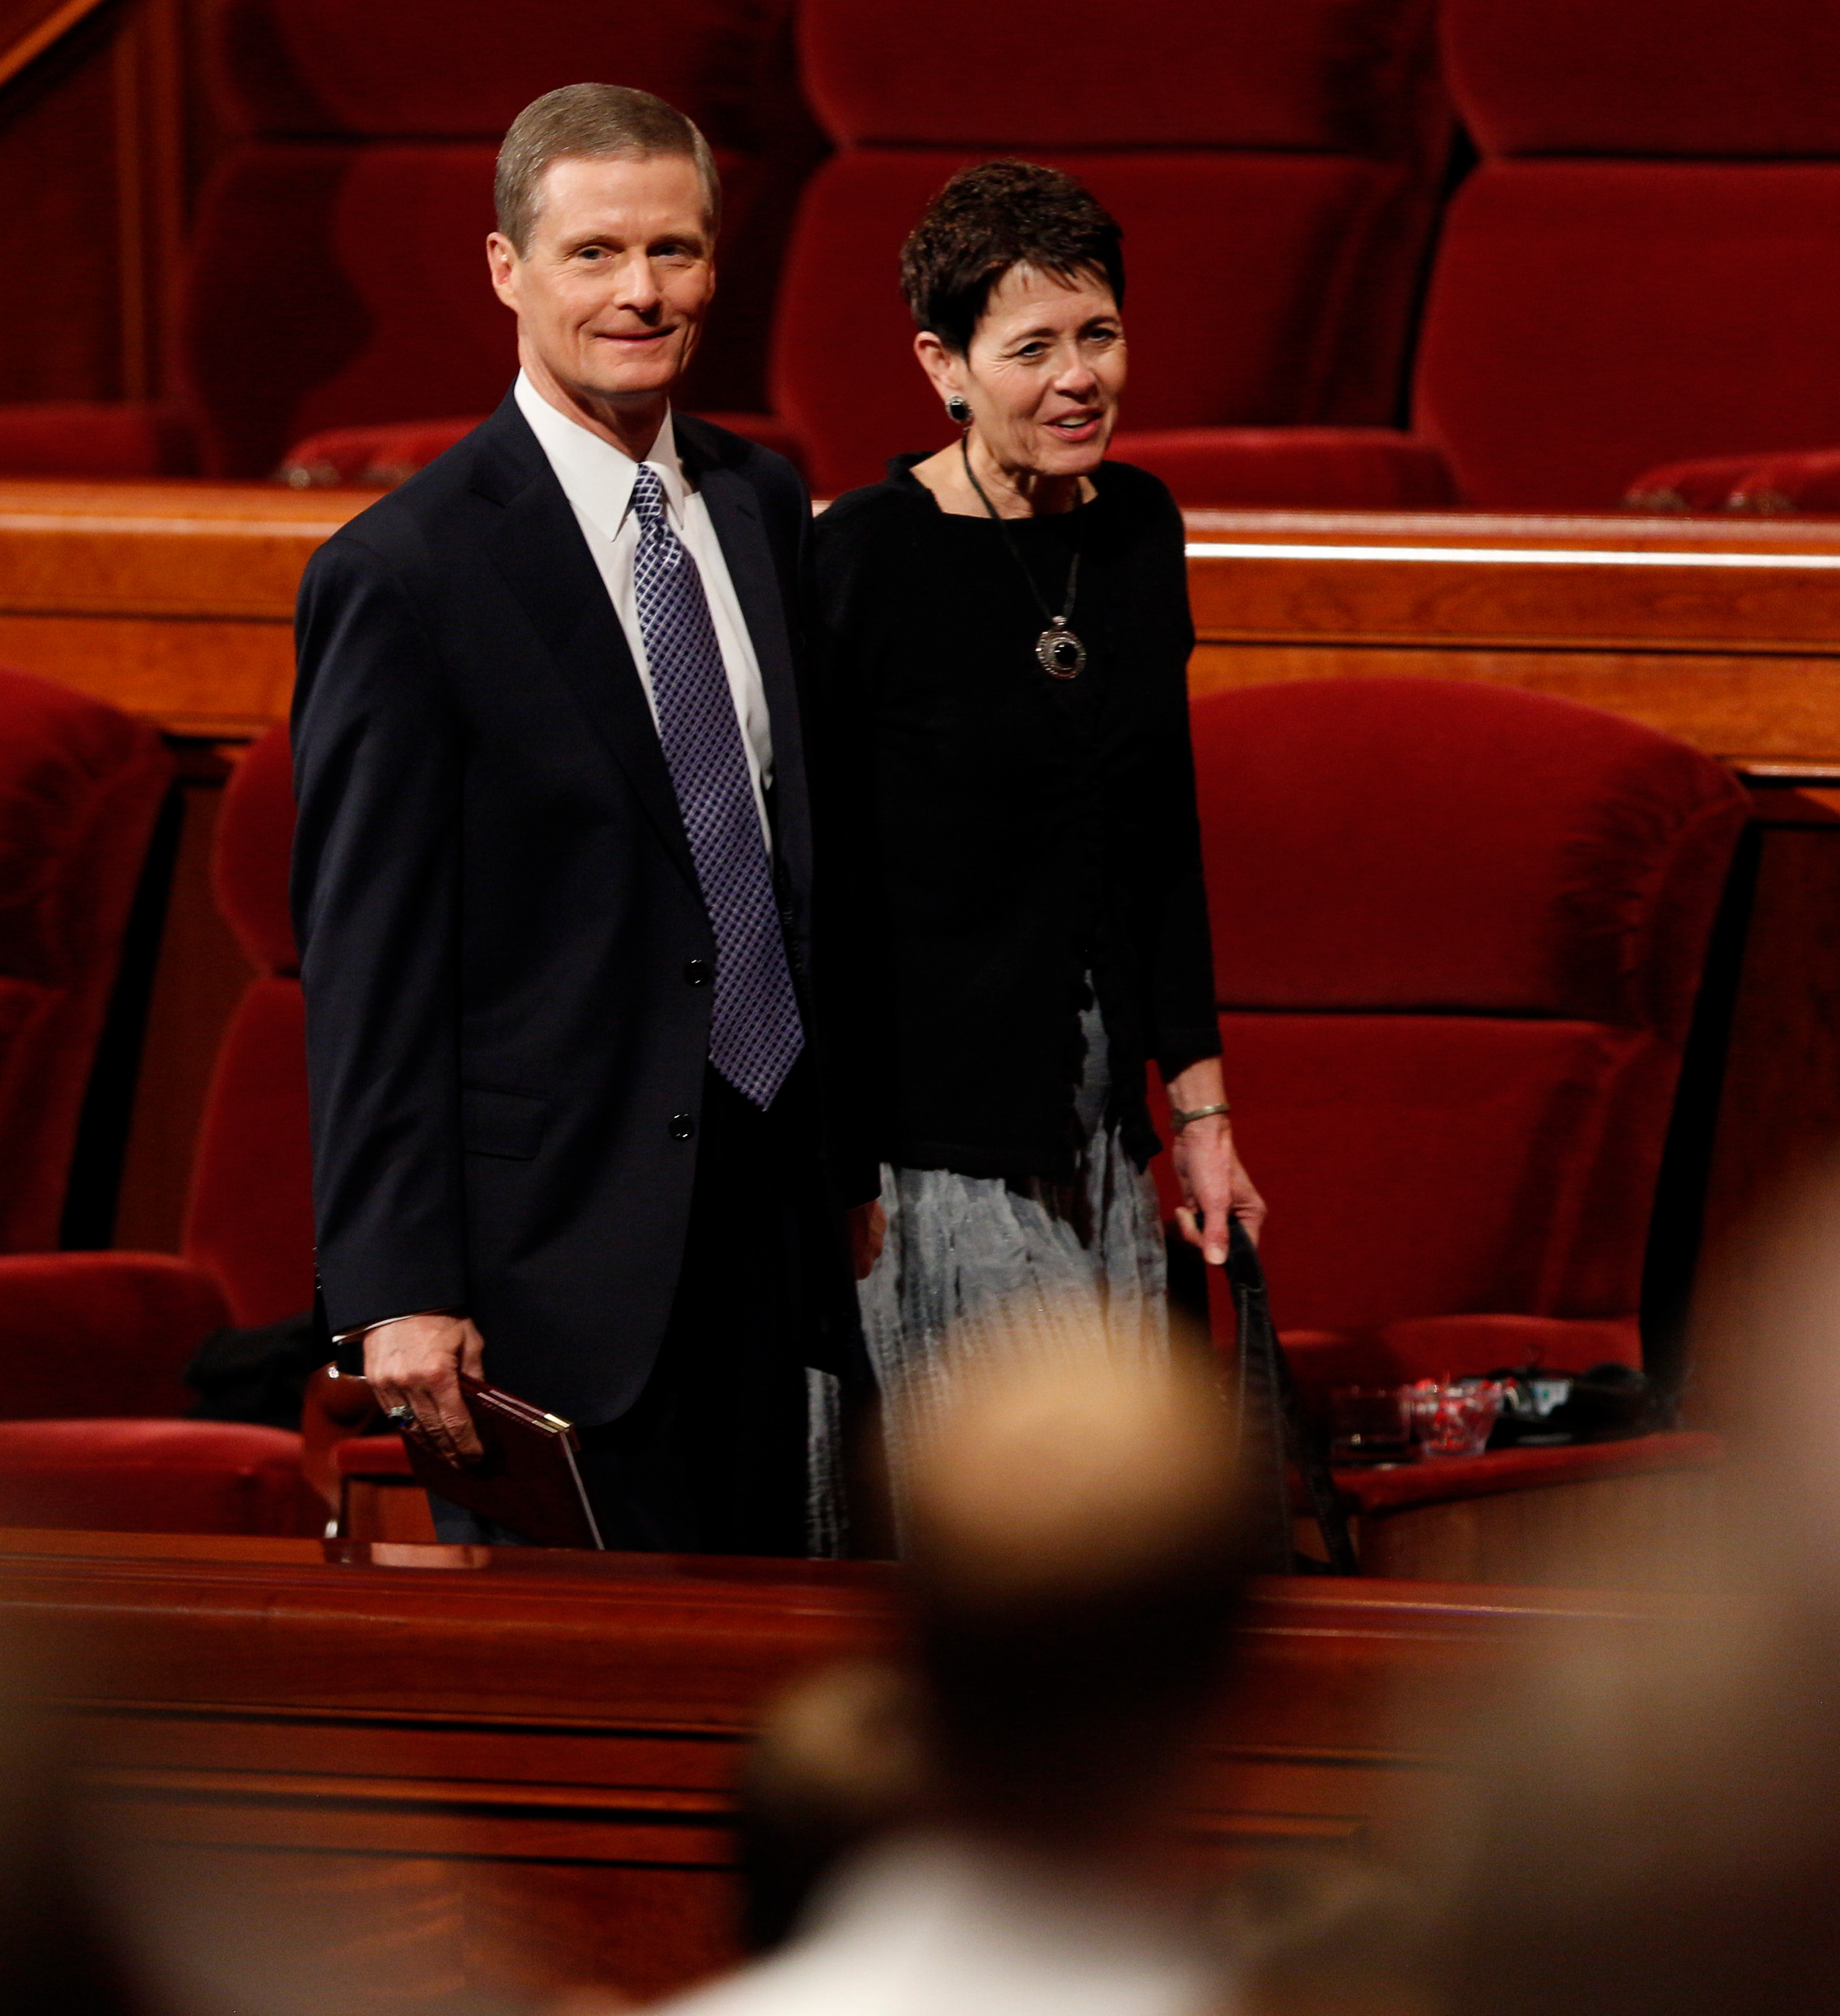 Elder David A. Bednar and his wife, Sister Susan Bednar, leave the Conference Center podium after a general conference session.